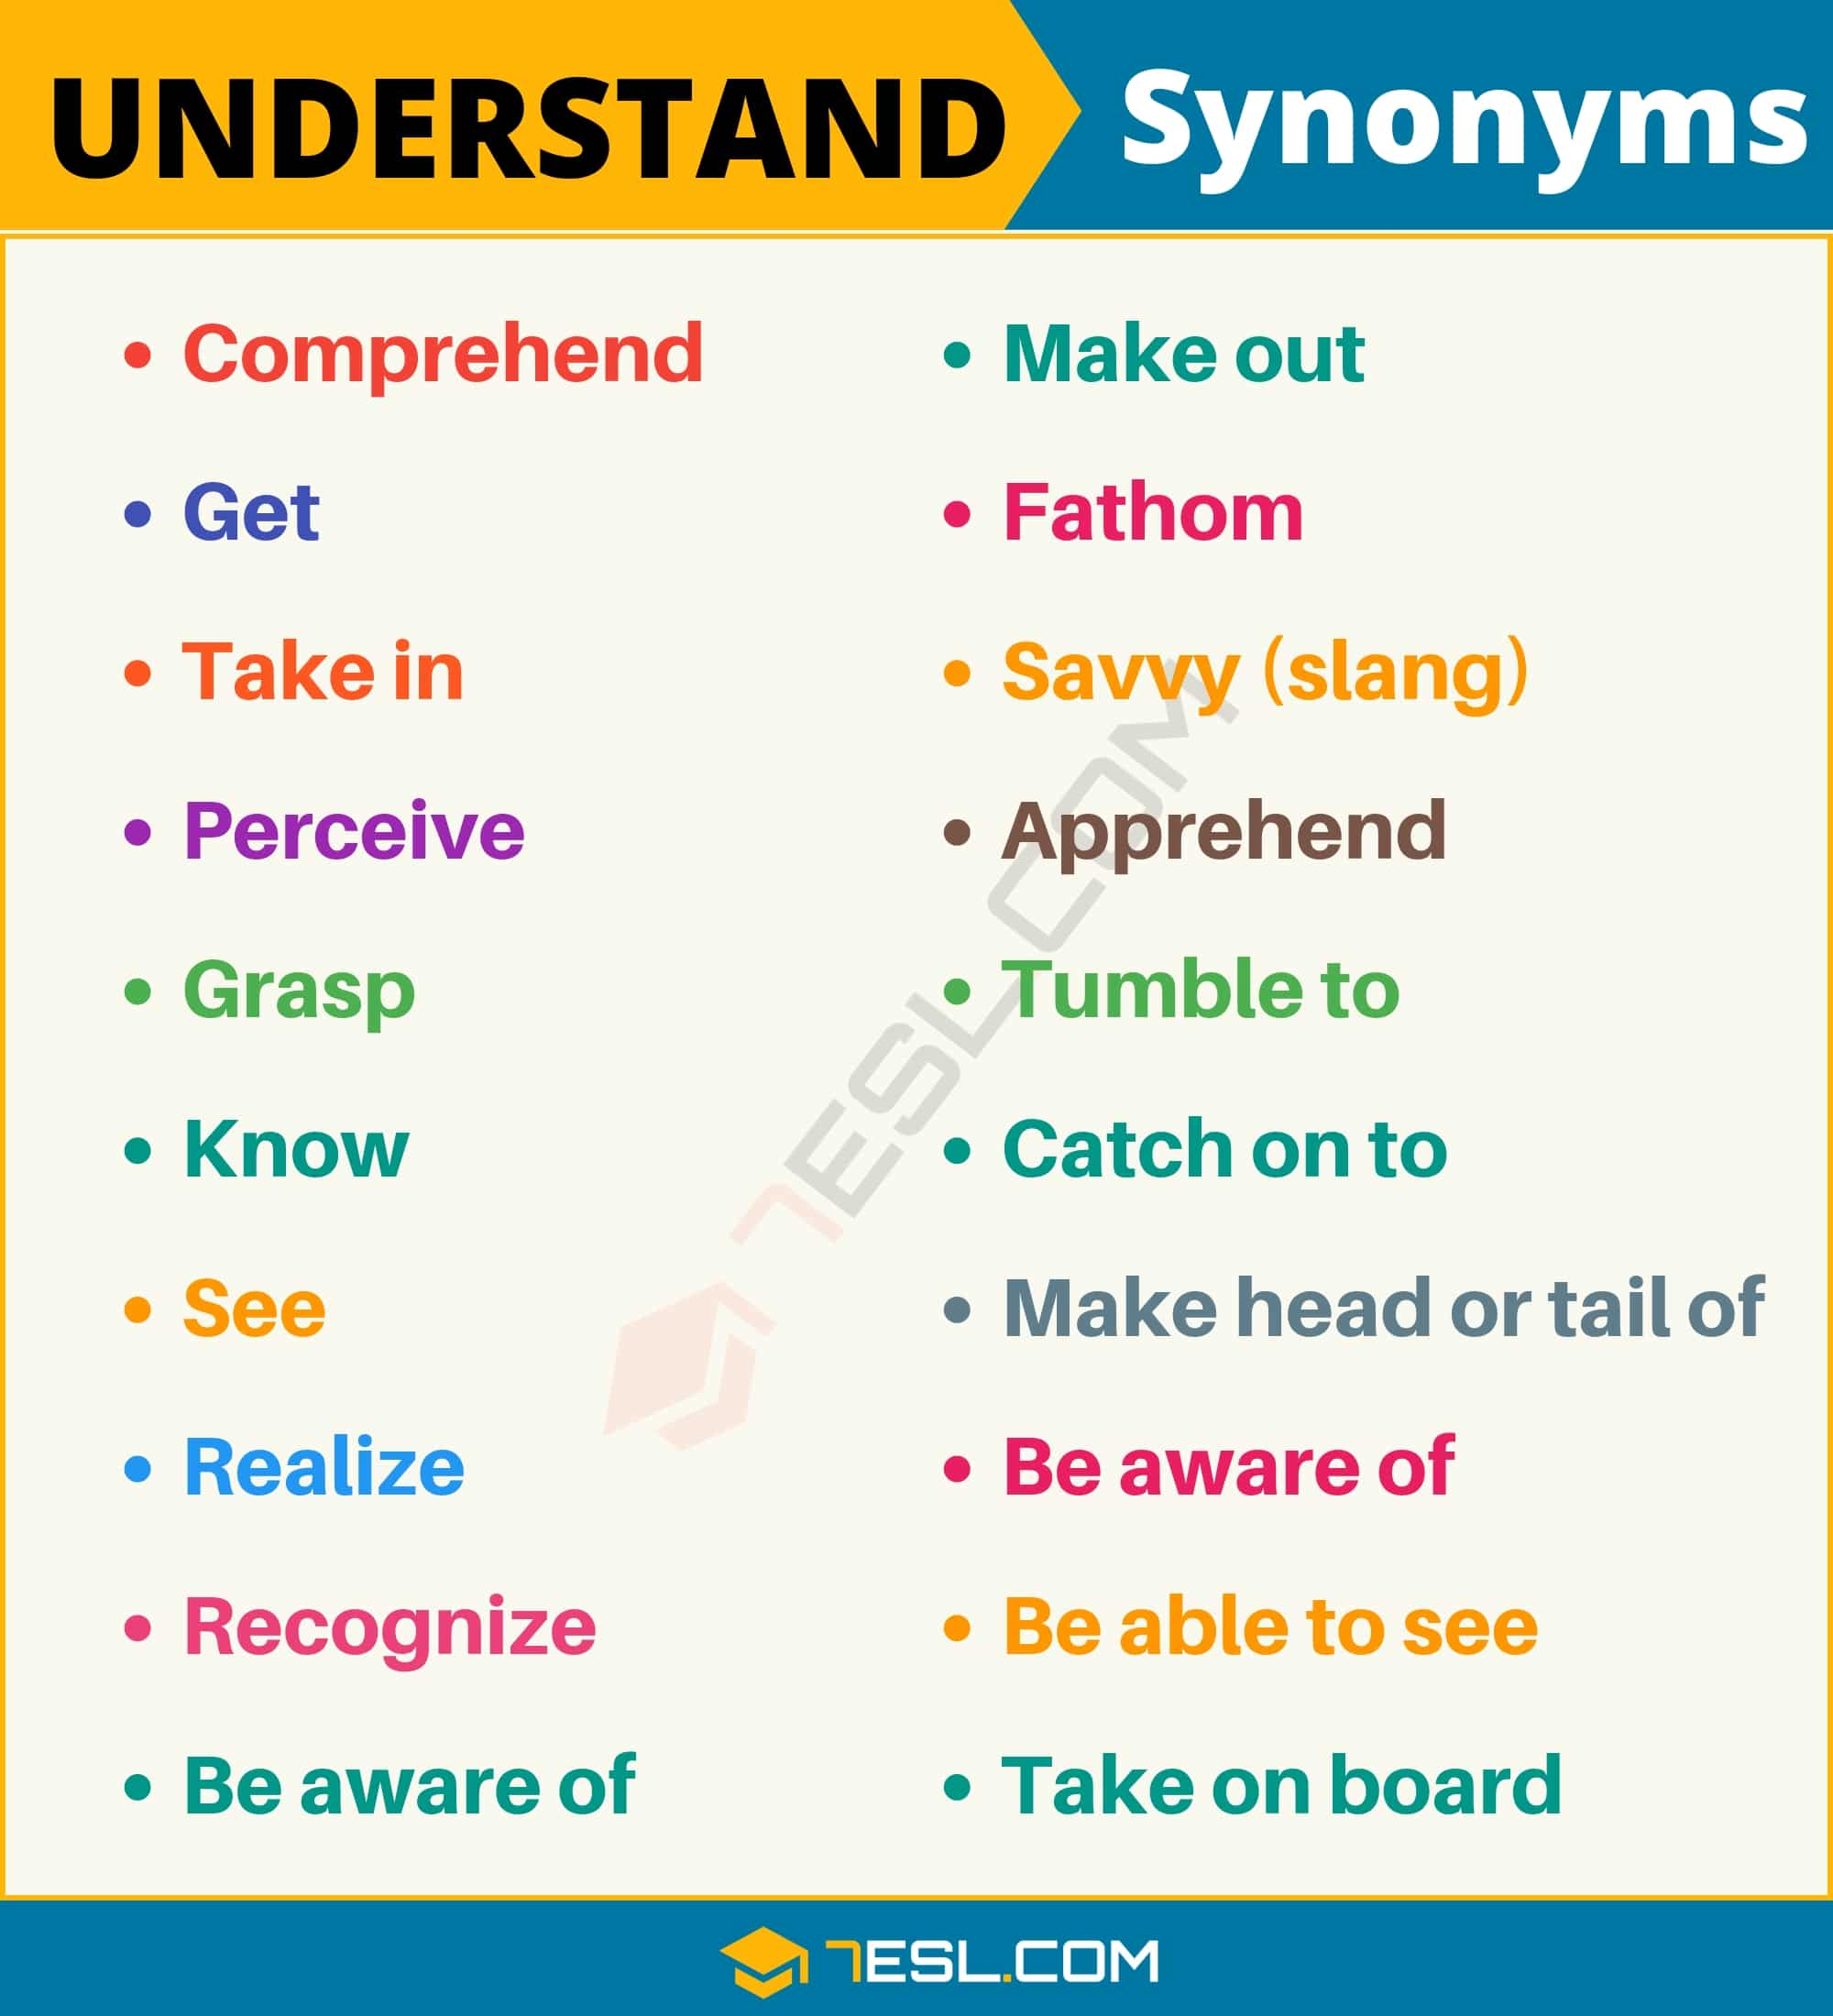 UNDERSTAND Synonym: List of 20 Synonyms for Understand with Useful Examples